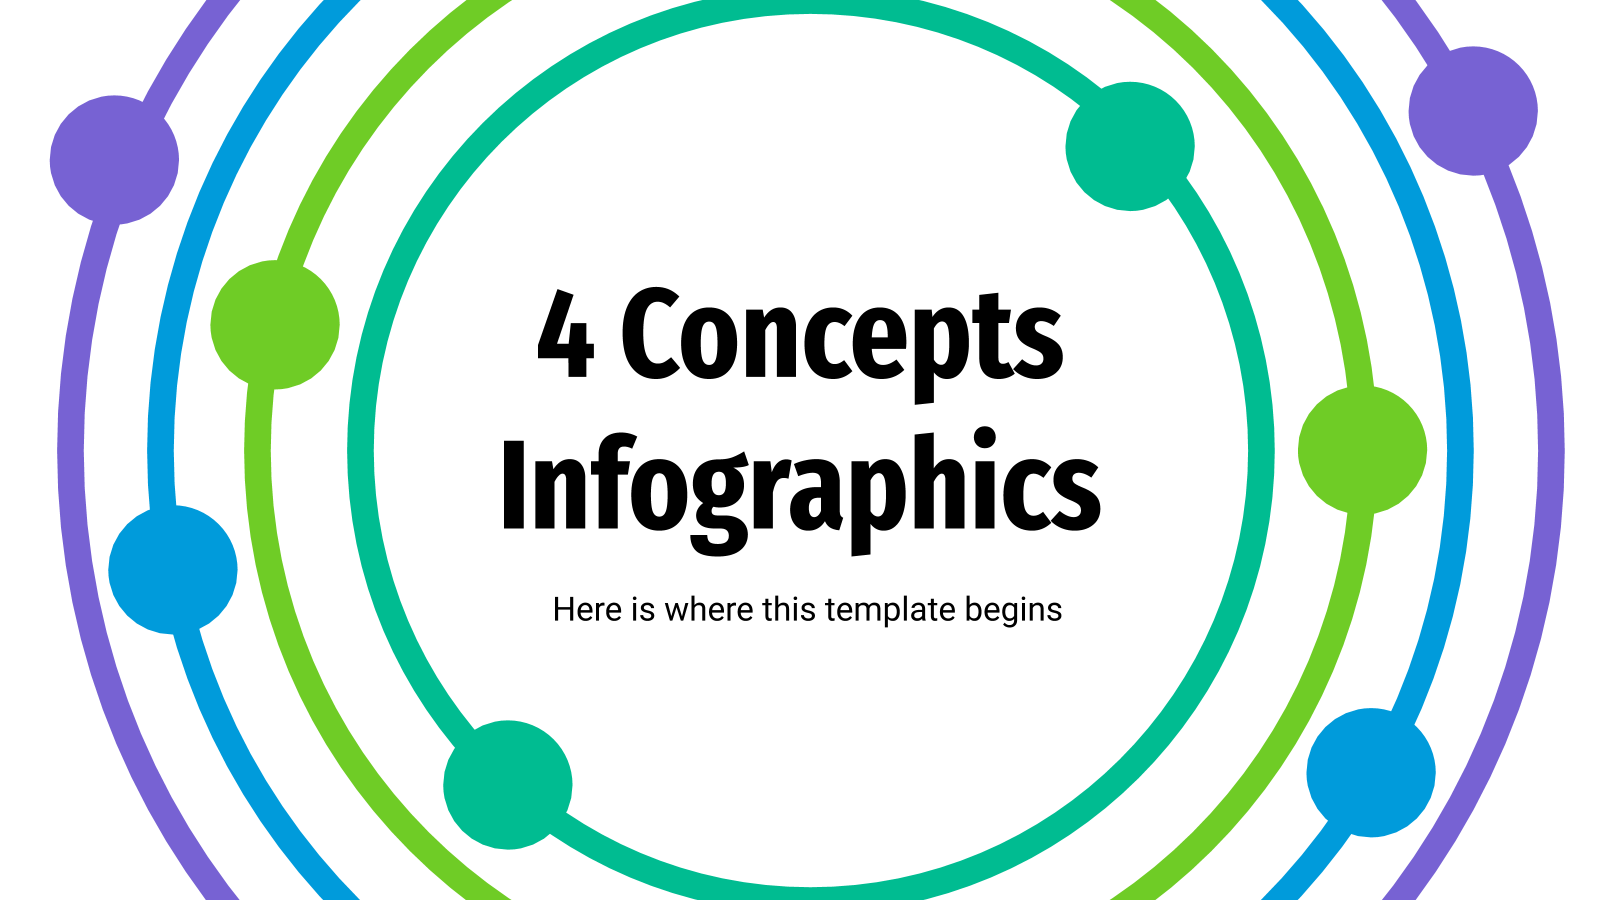 4 Concepts Infographics presentation template